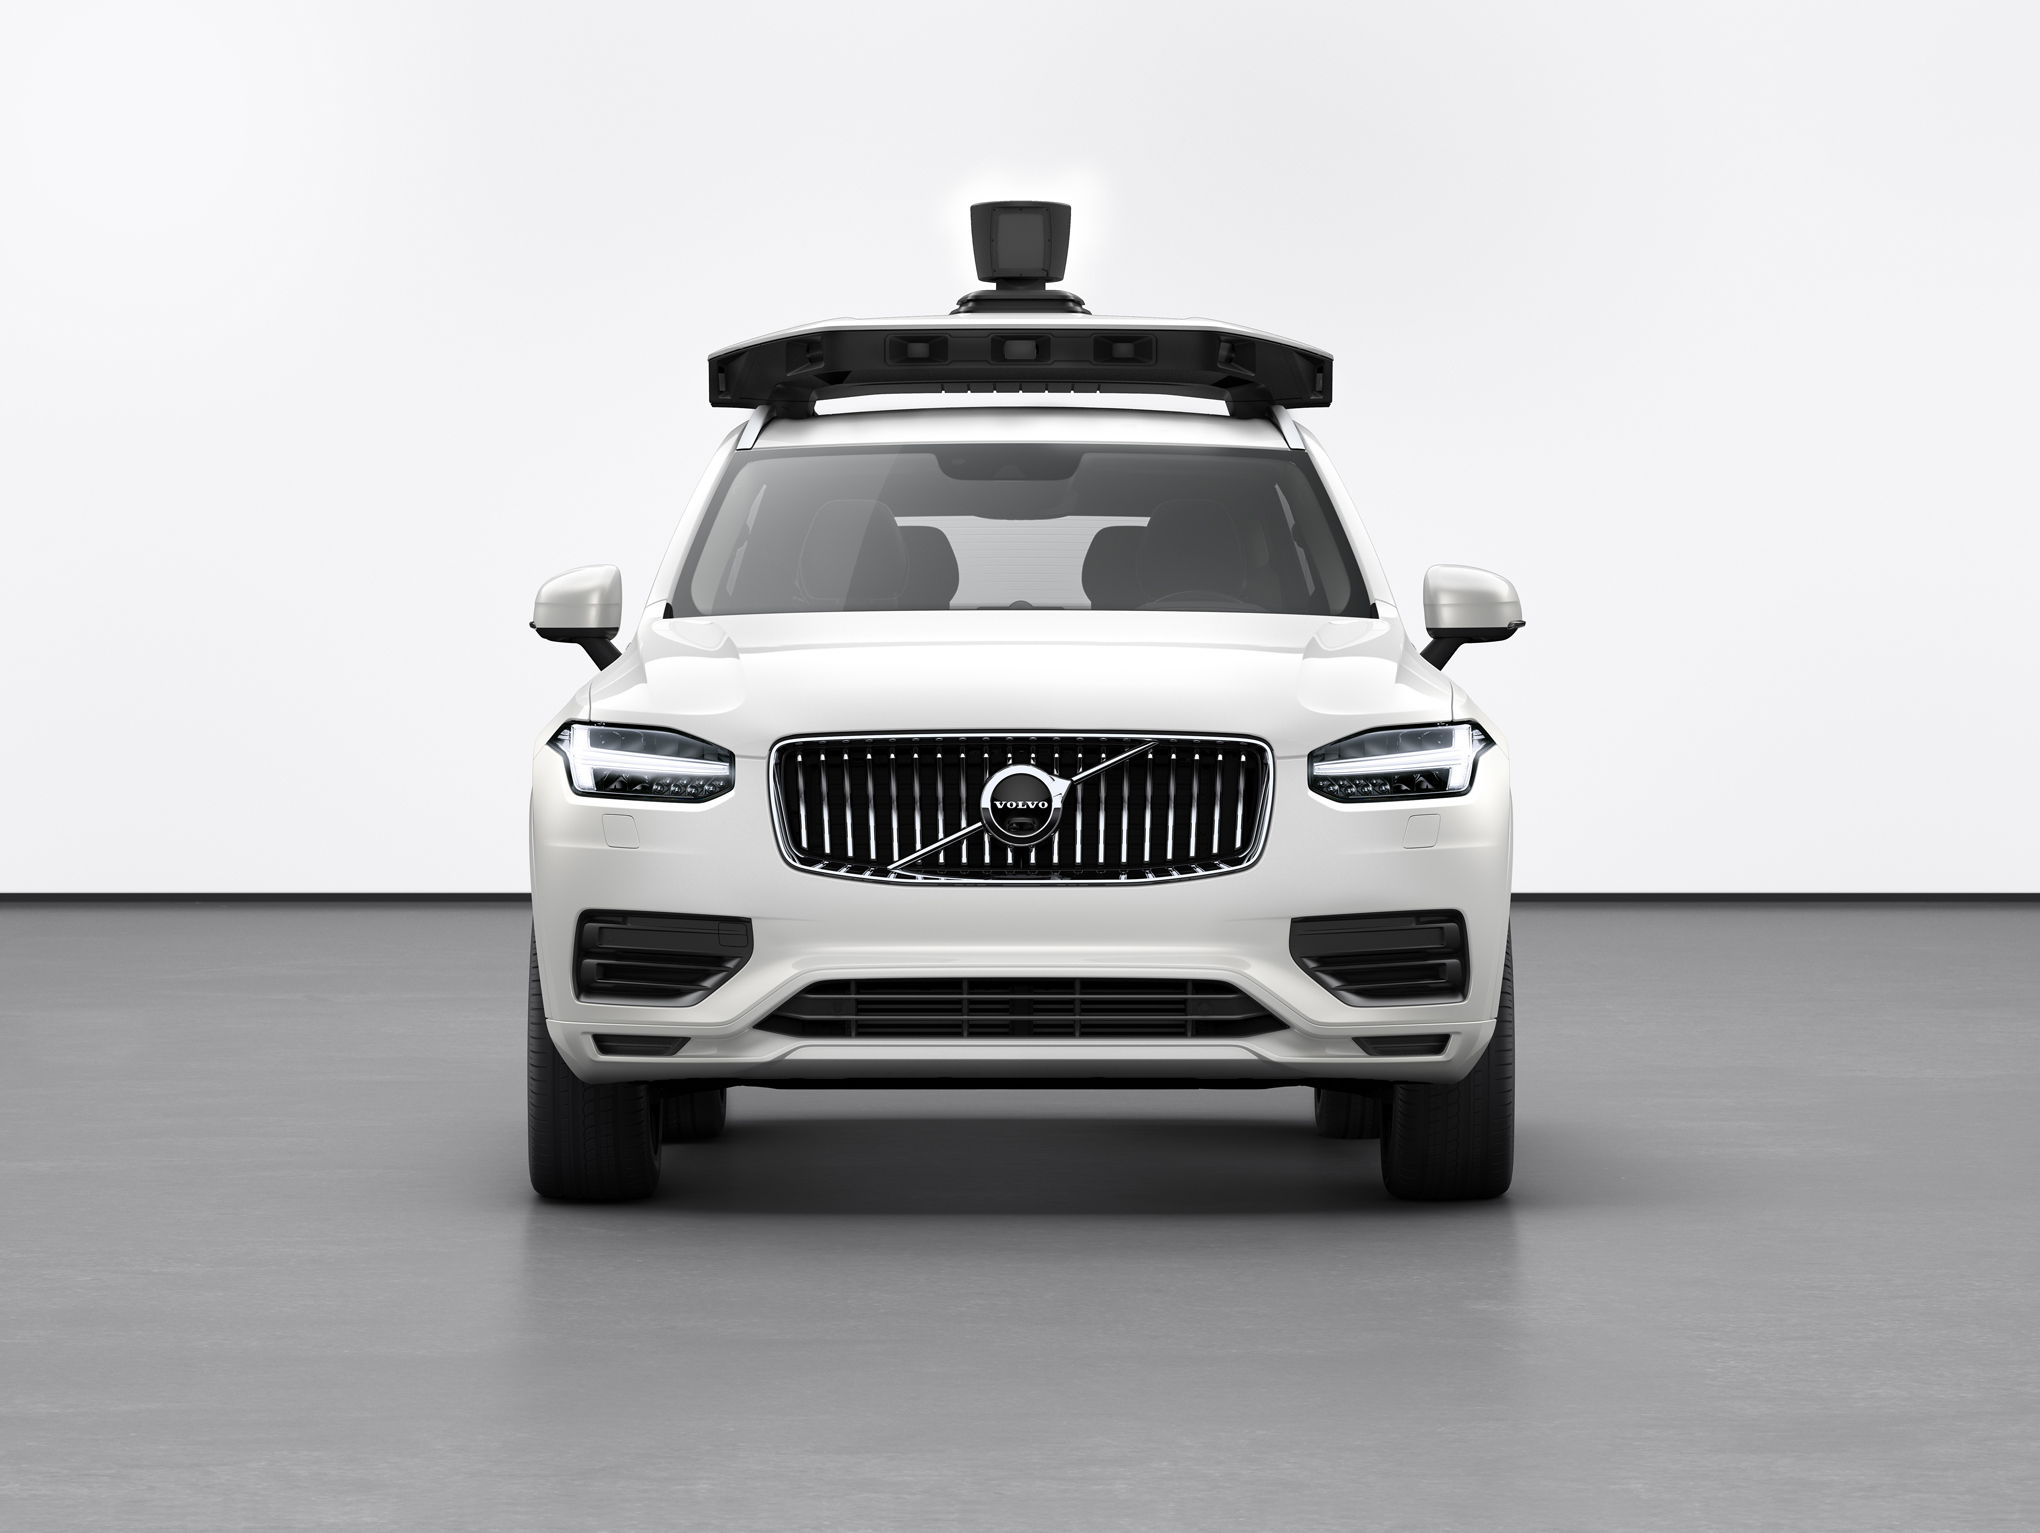 Uber Debuts A New Self Driving Car With More Fail Safes